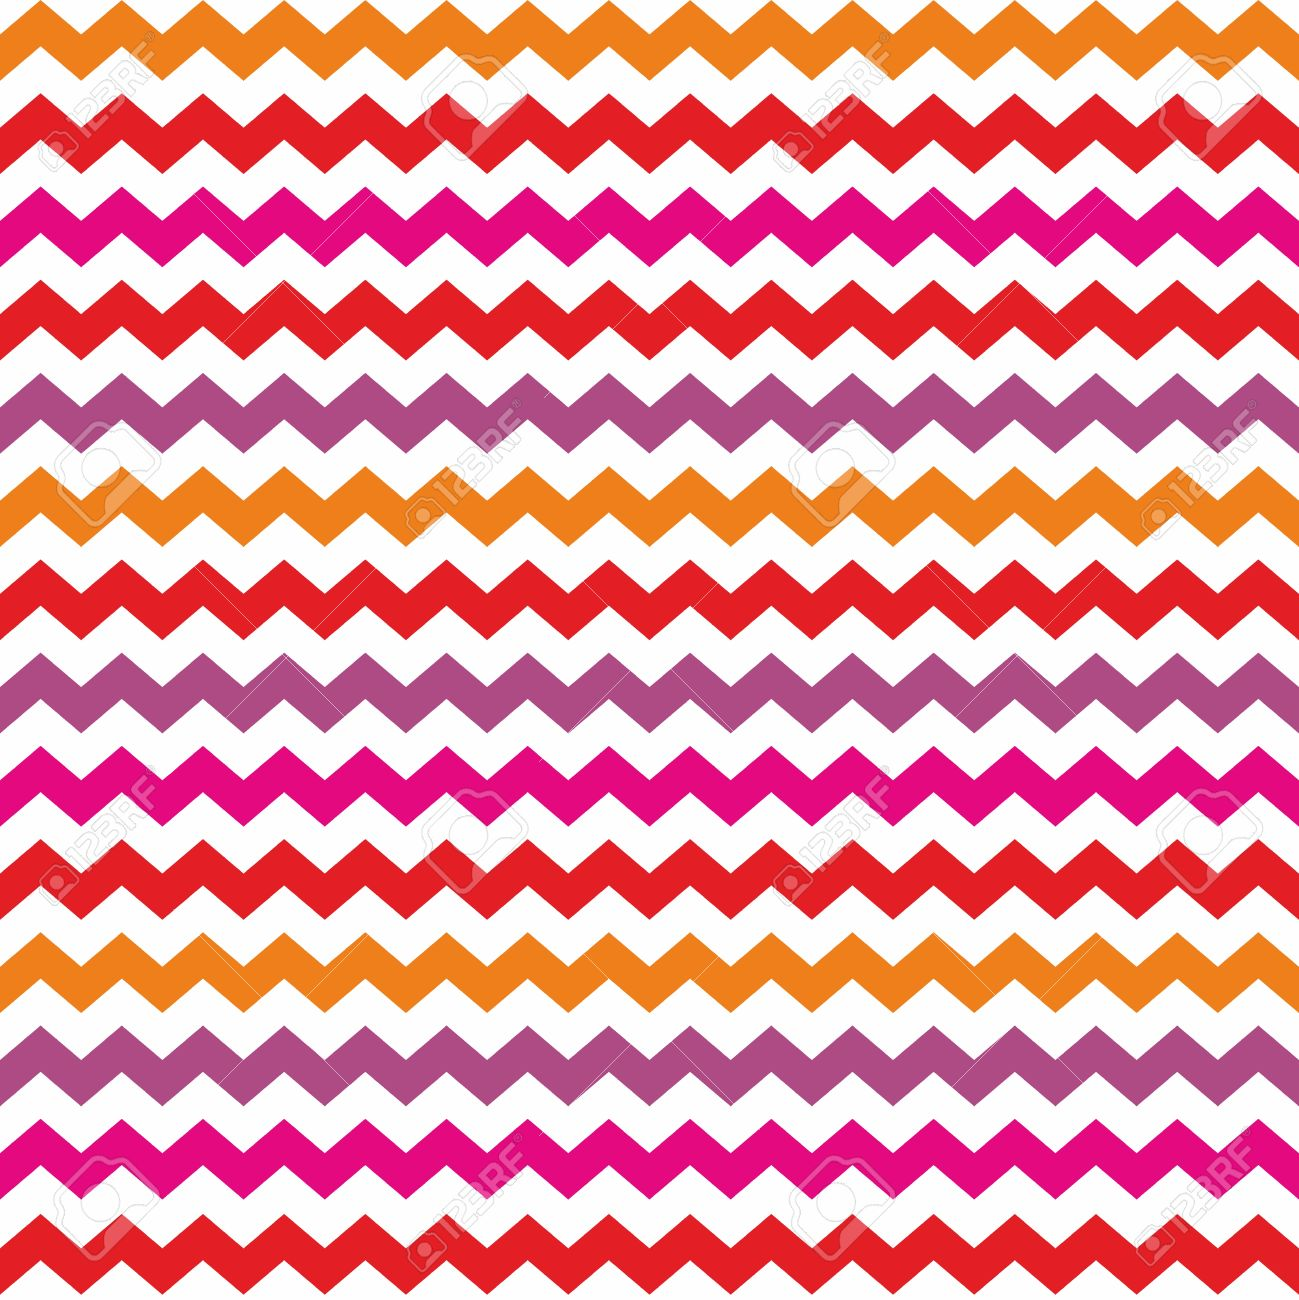 Chevron Vector Seamless Colorful Pattern Or Tile Background With Zig Zag Red Purple Pink